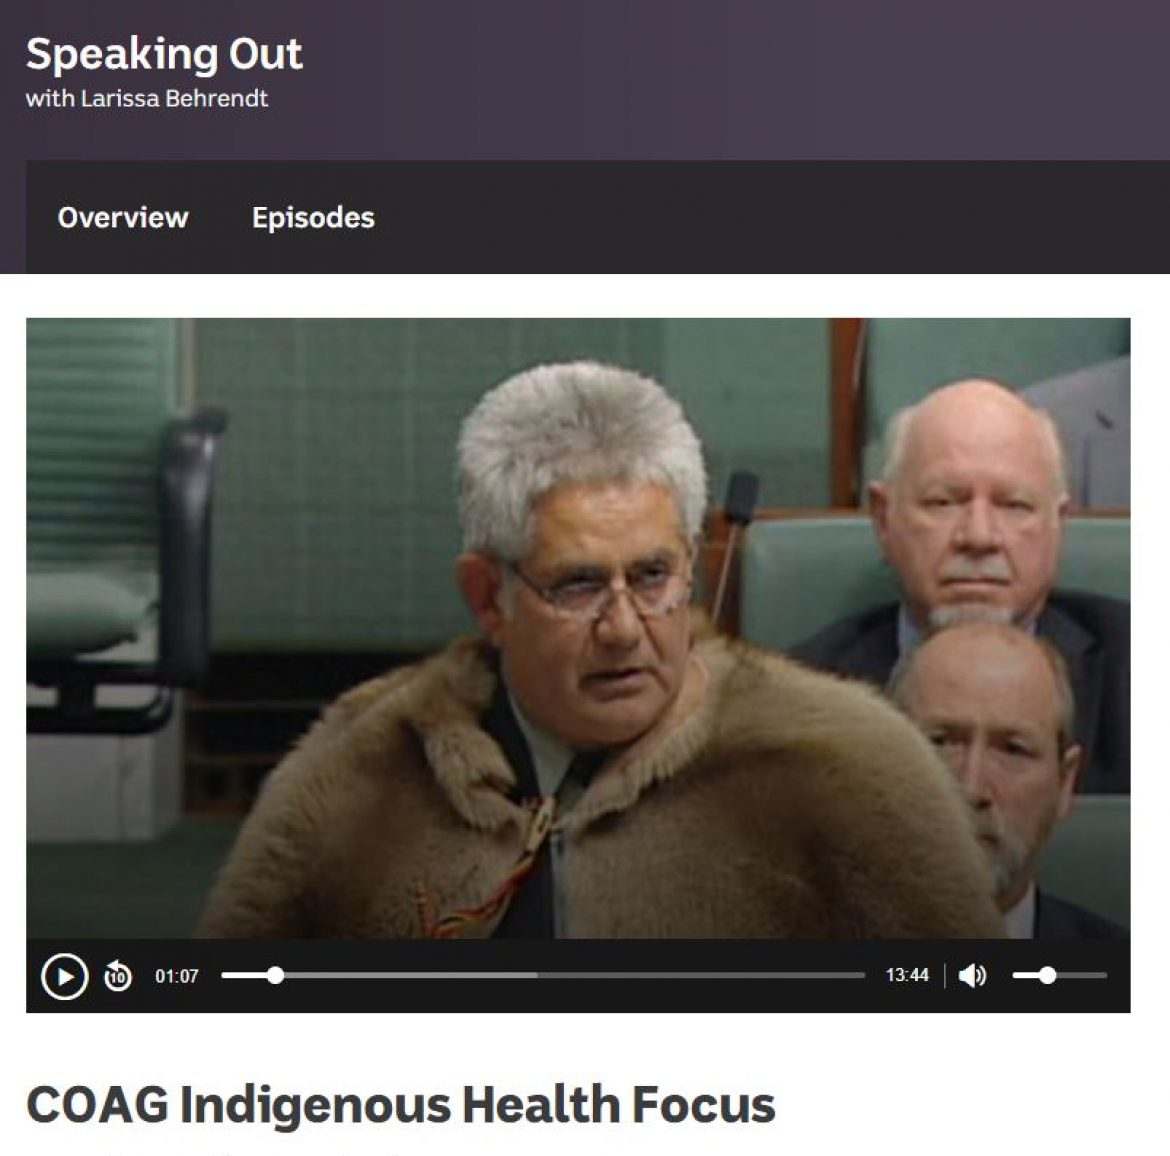 COAG Indigenous Health Focus